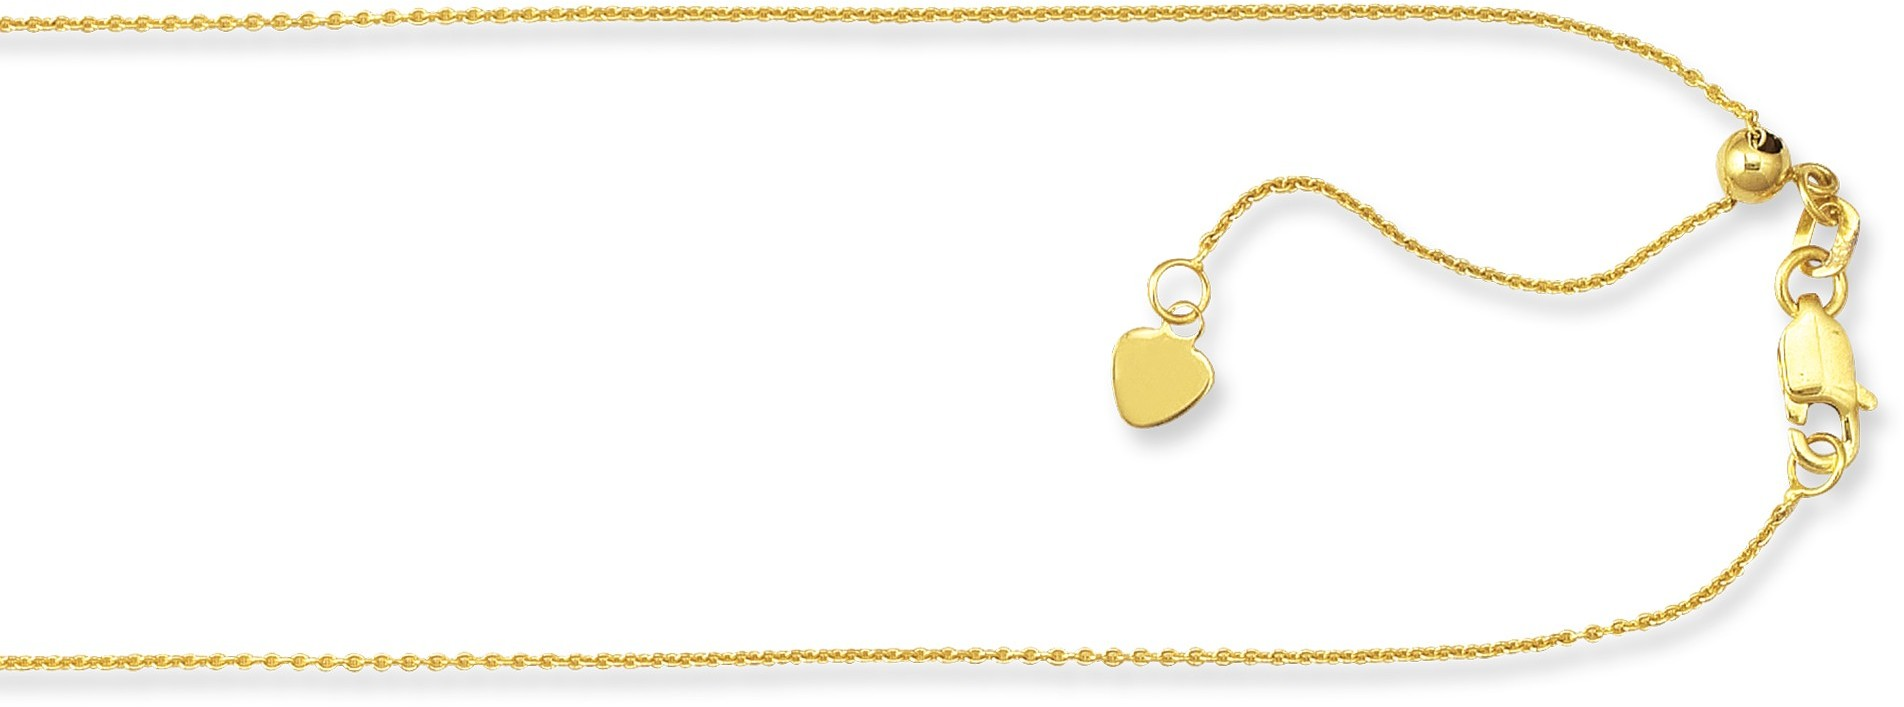 "22"" 10K Yellow Gold 0.90mm (0.04"") Polished Diamond Cut Adjustable Cable Chain w/ Lobster Clasp"